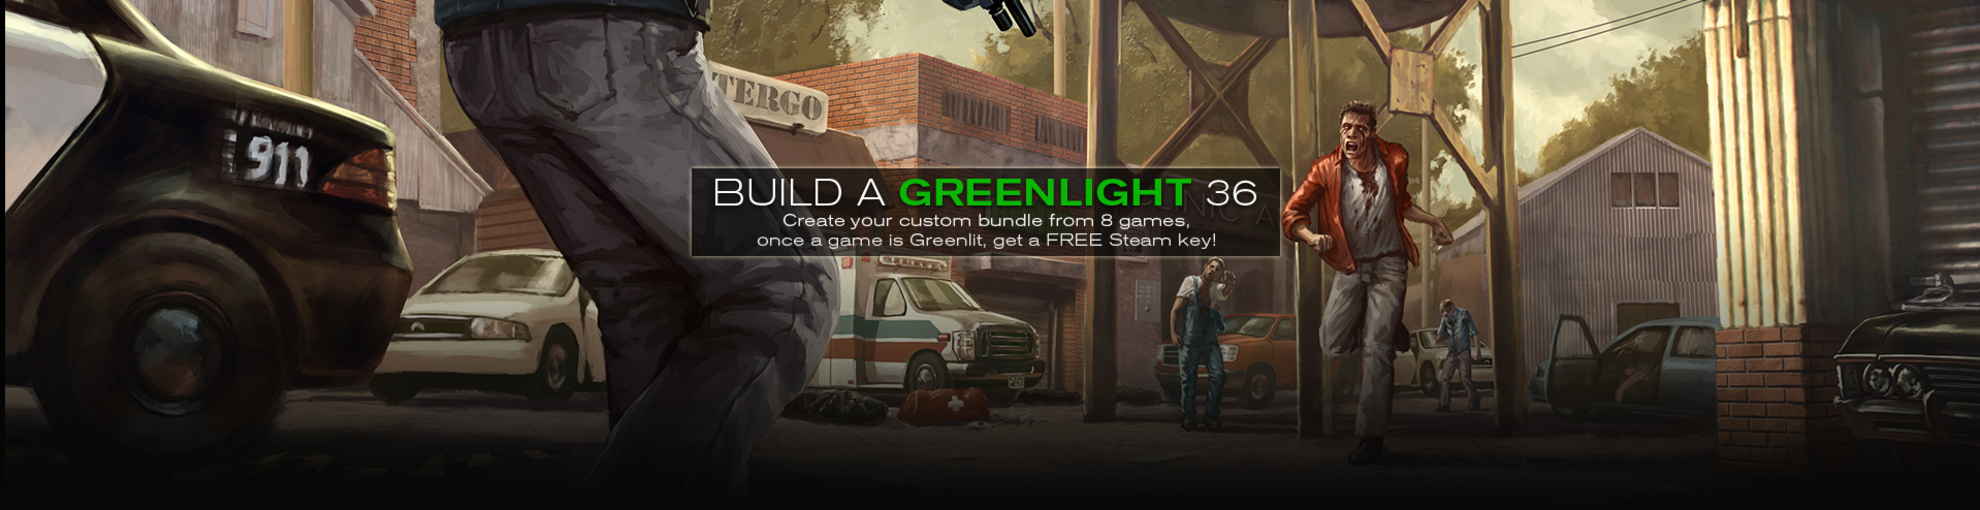 Greenlight36.jpg